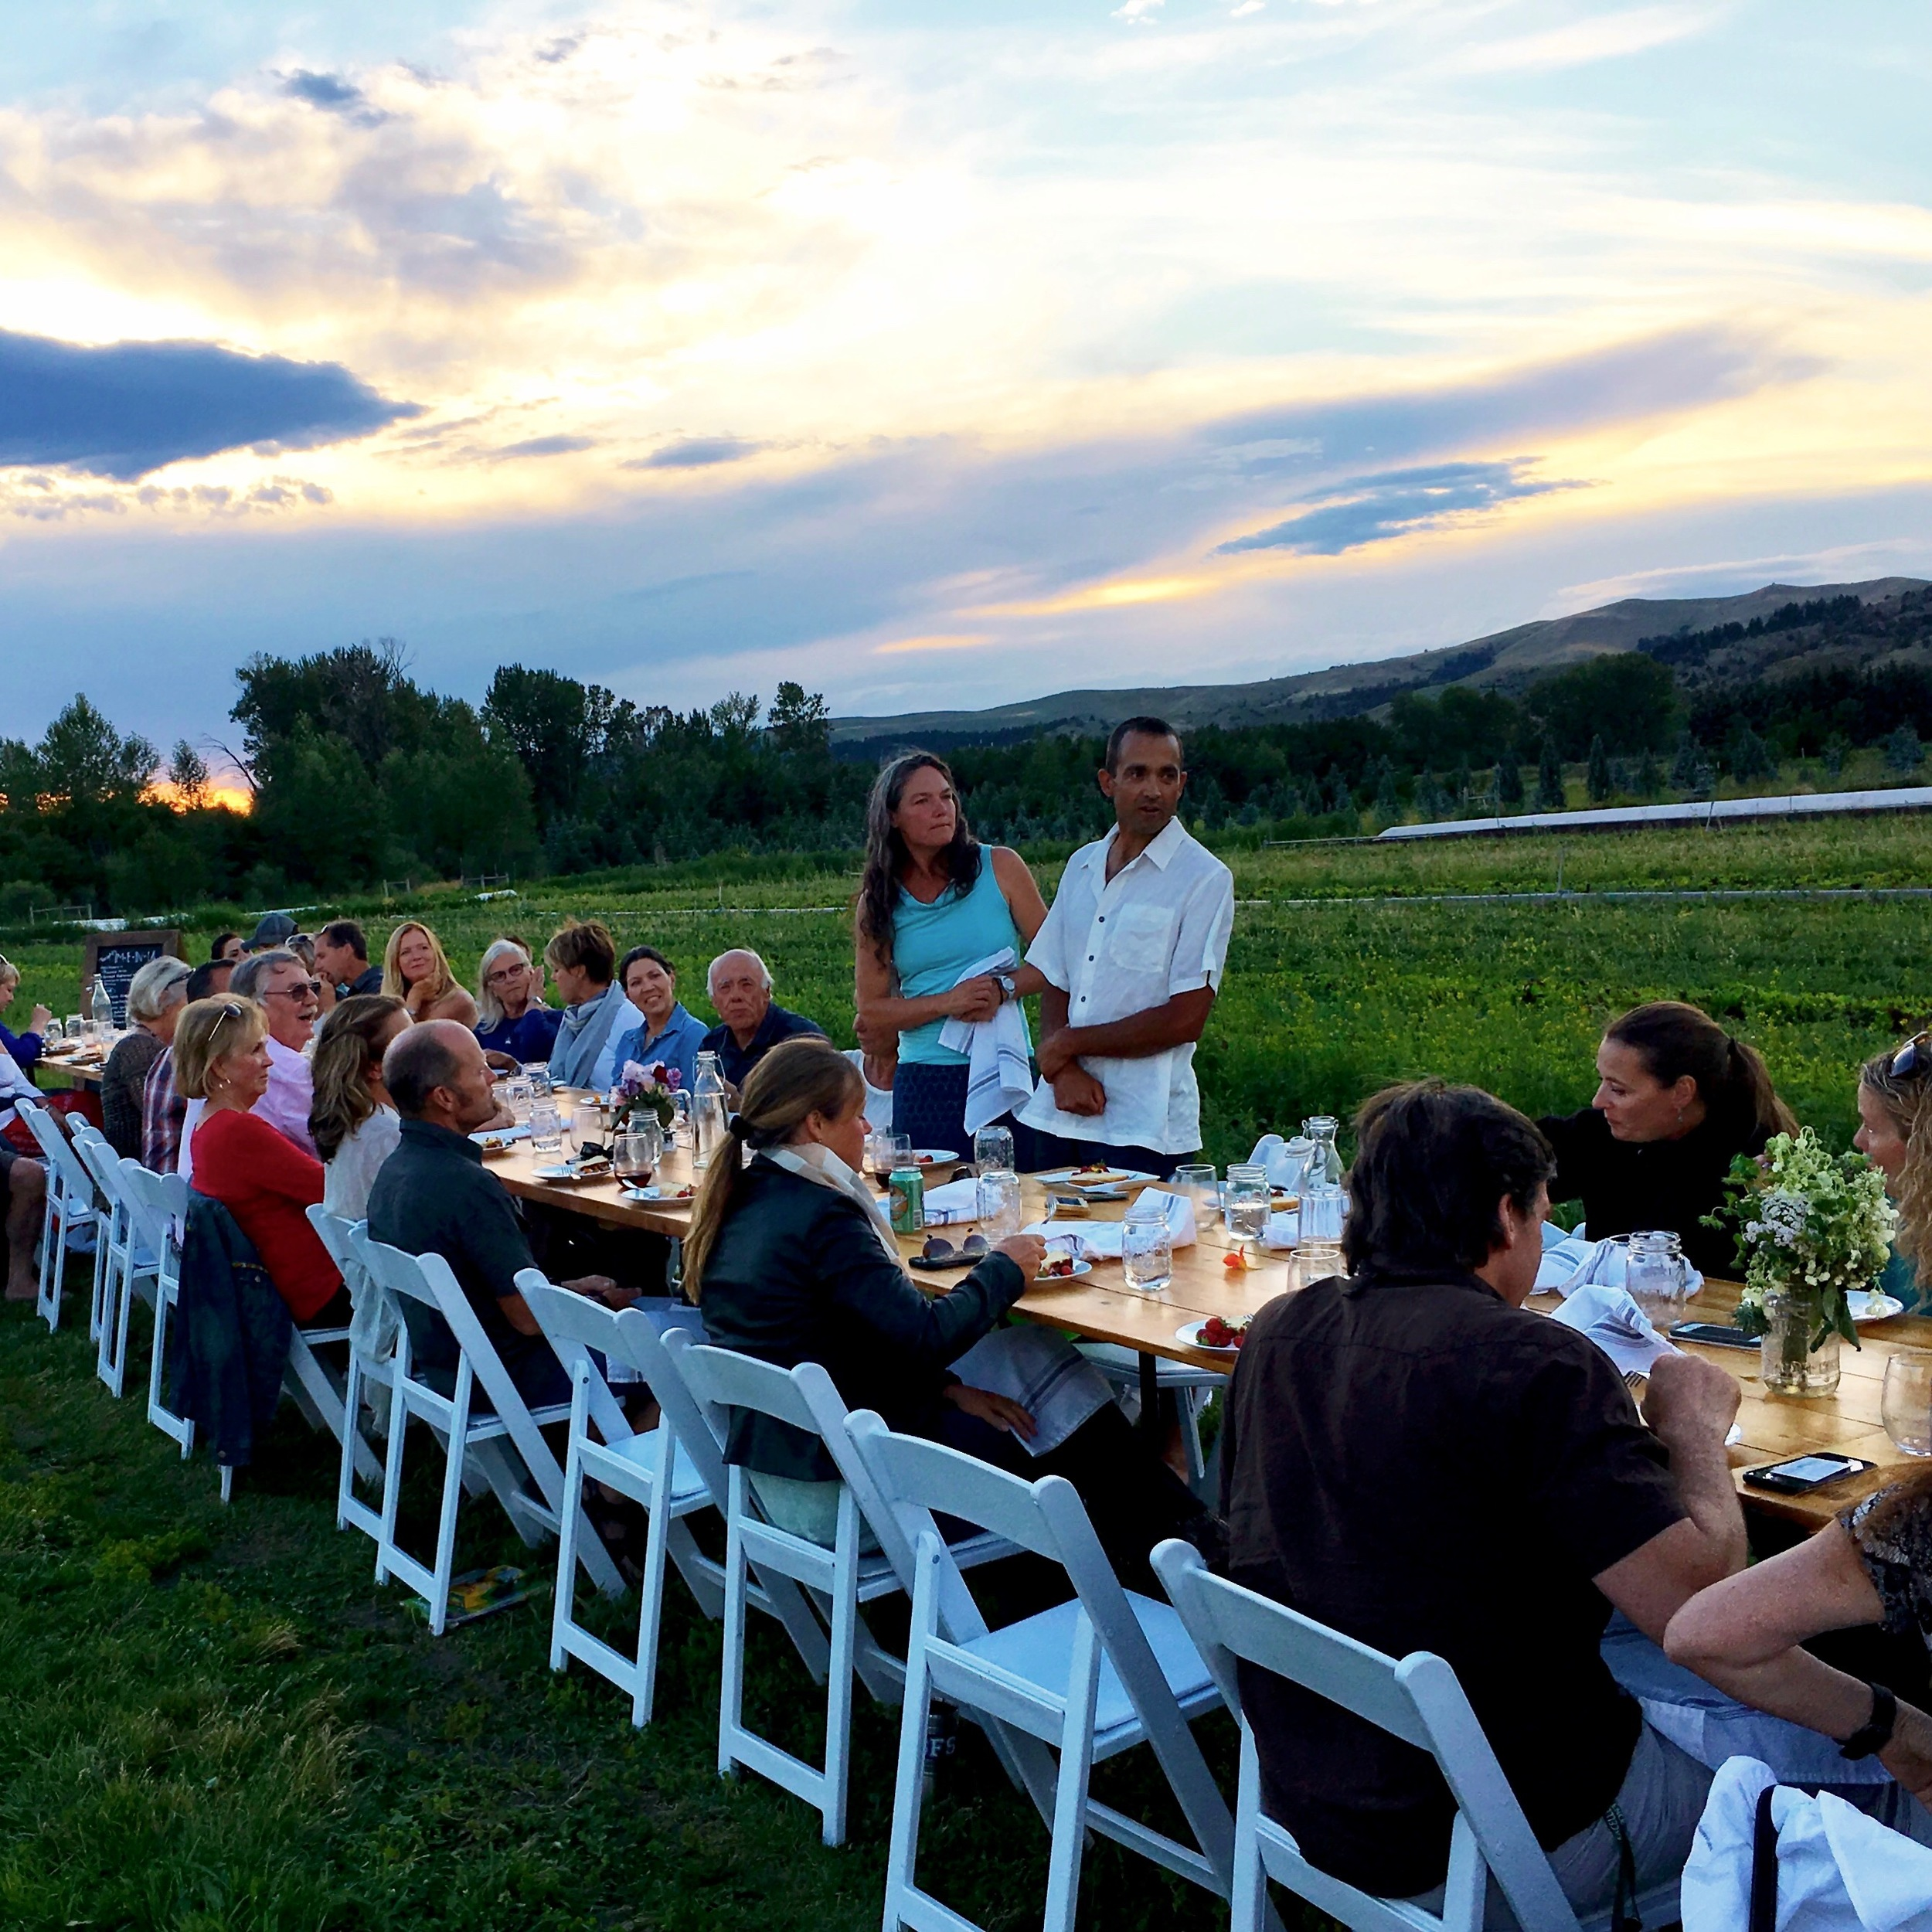 This is Farm-to-Table the real deal. Last night we enjoyed a SeasonalMontana Farm-to-Table dinner at Gallatin Valley Botanical Farm prepared by chef Melissa Harrison. We've been attending Melissa's farm dinners since she started five years ago. What a delicious and friendly way to spend a lovely summer evening. Thank you, Melissa, for all your effort and hard work. It is appreciated.